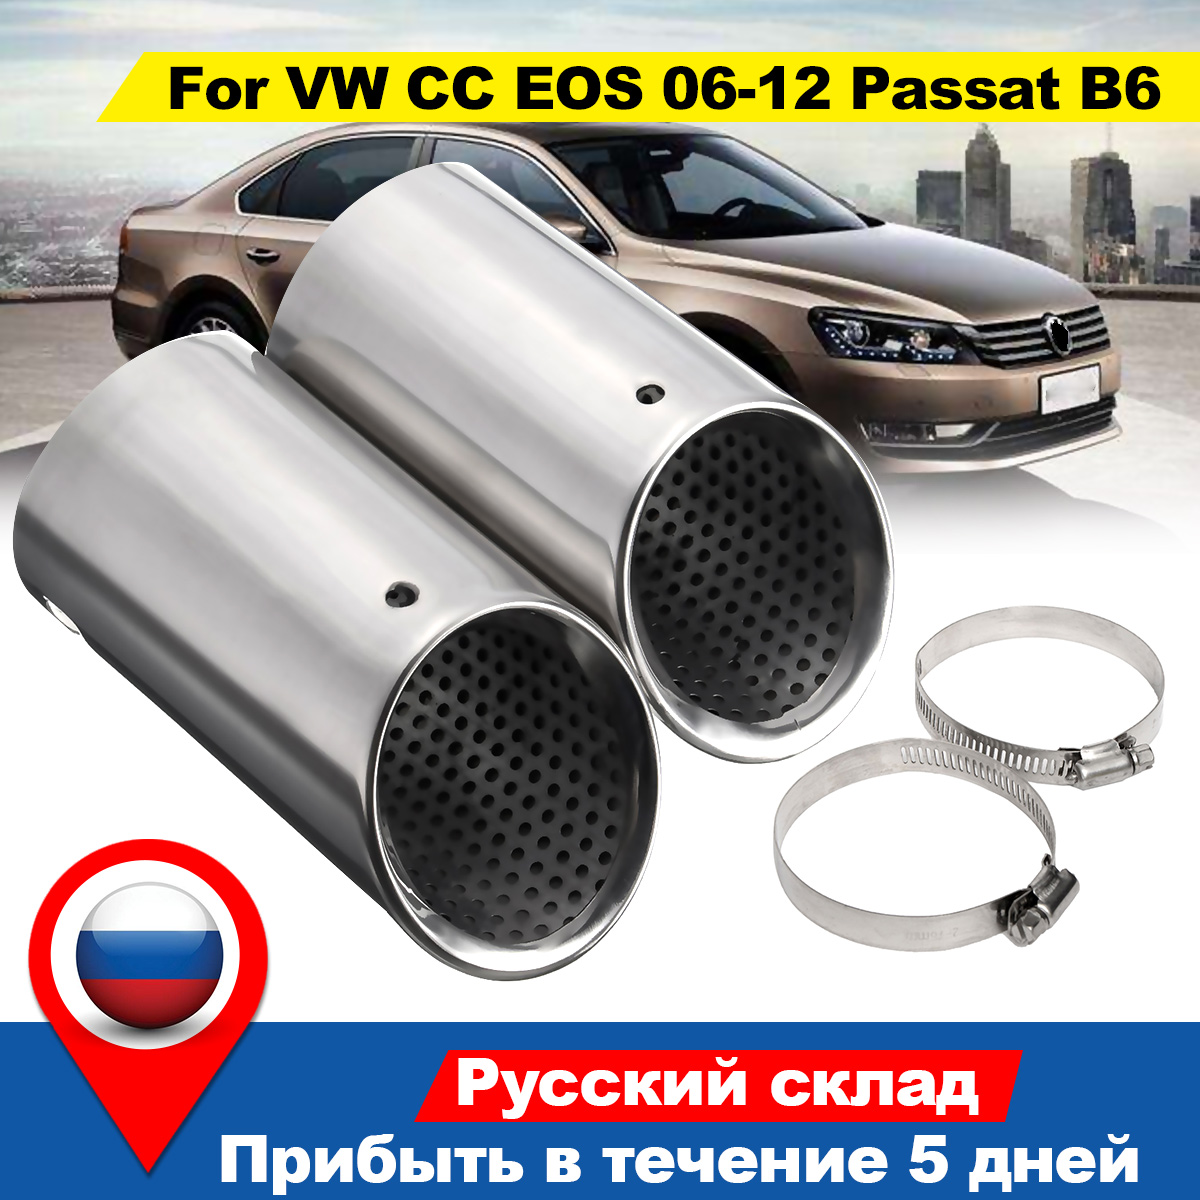 Volkswagen California Estate Review 2005 2015: 1 Pair Chrome Car Exhaust Tail Muffler Pipes Tips For VW